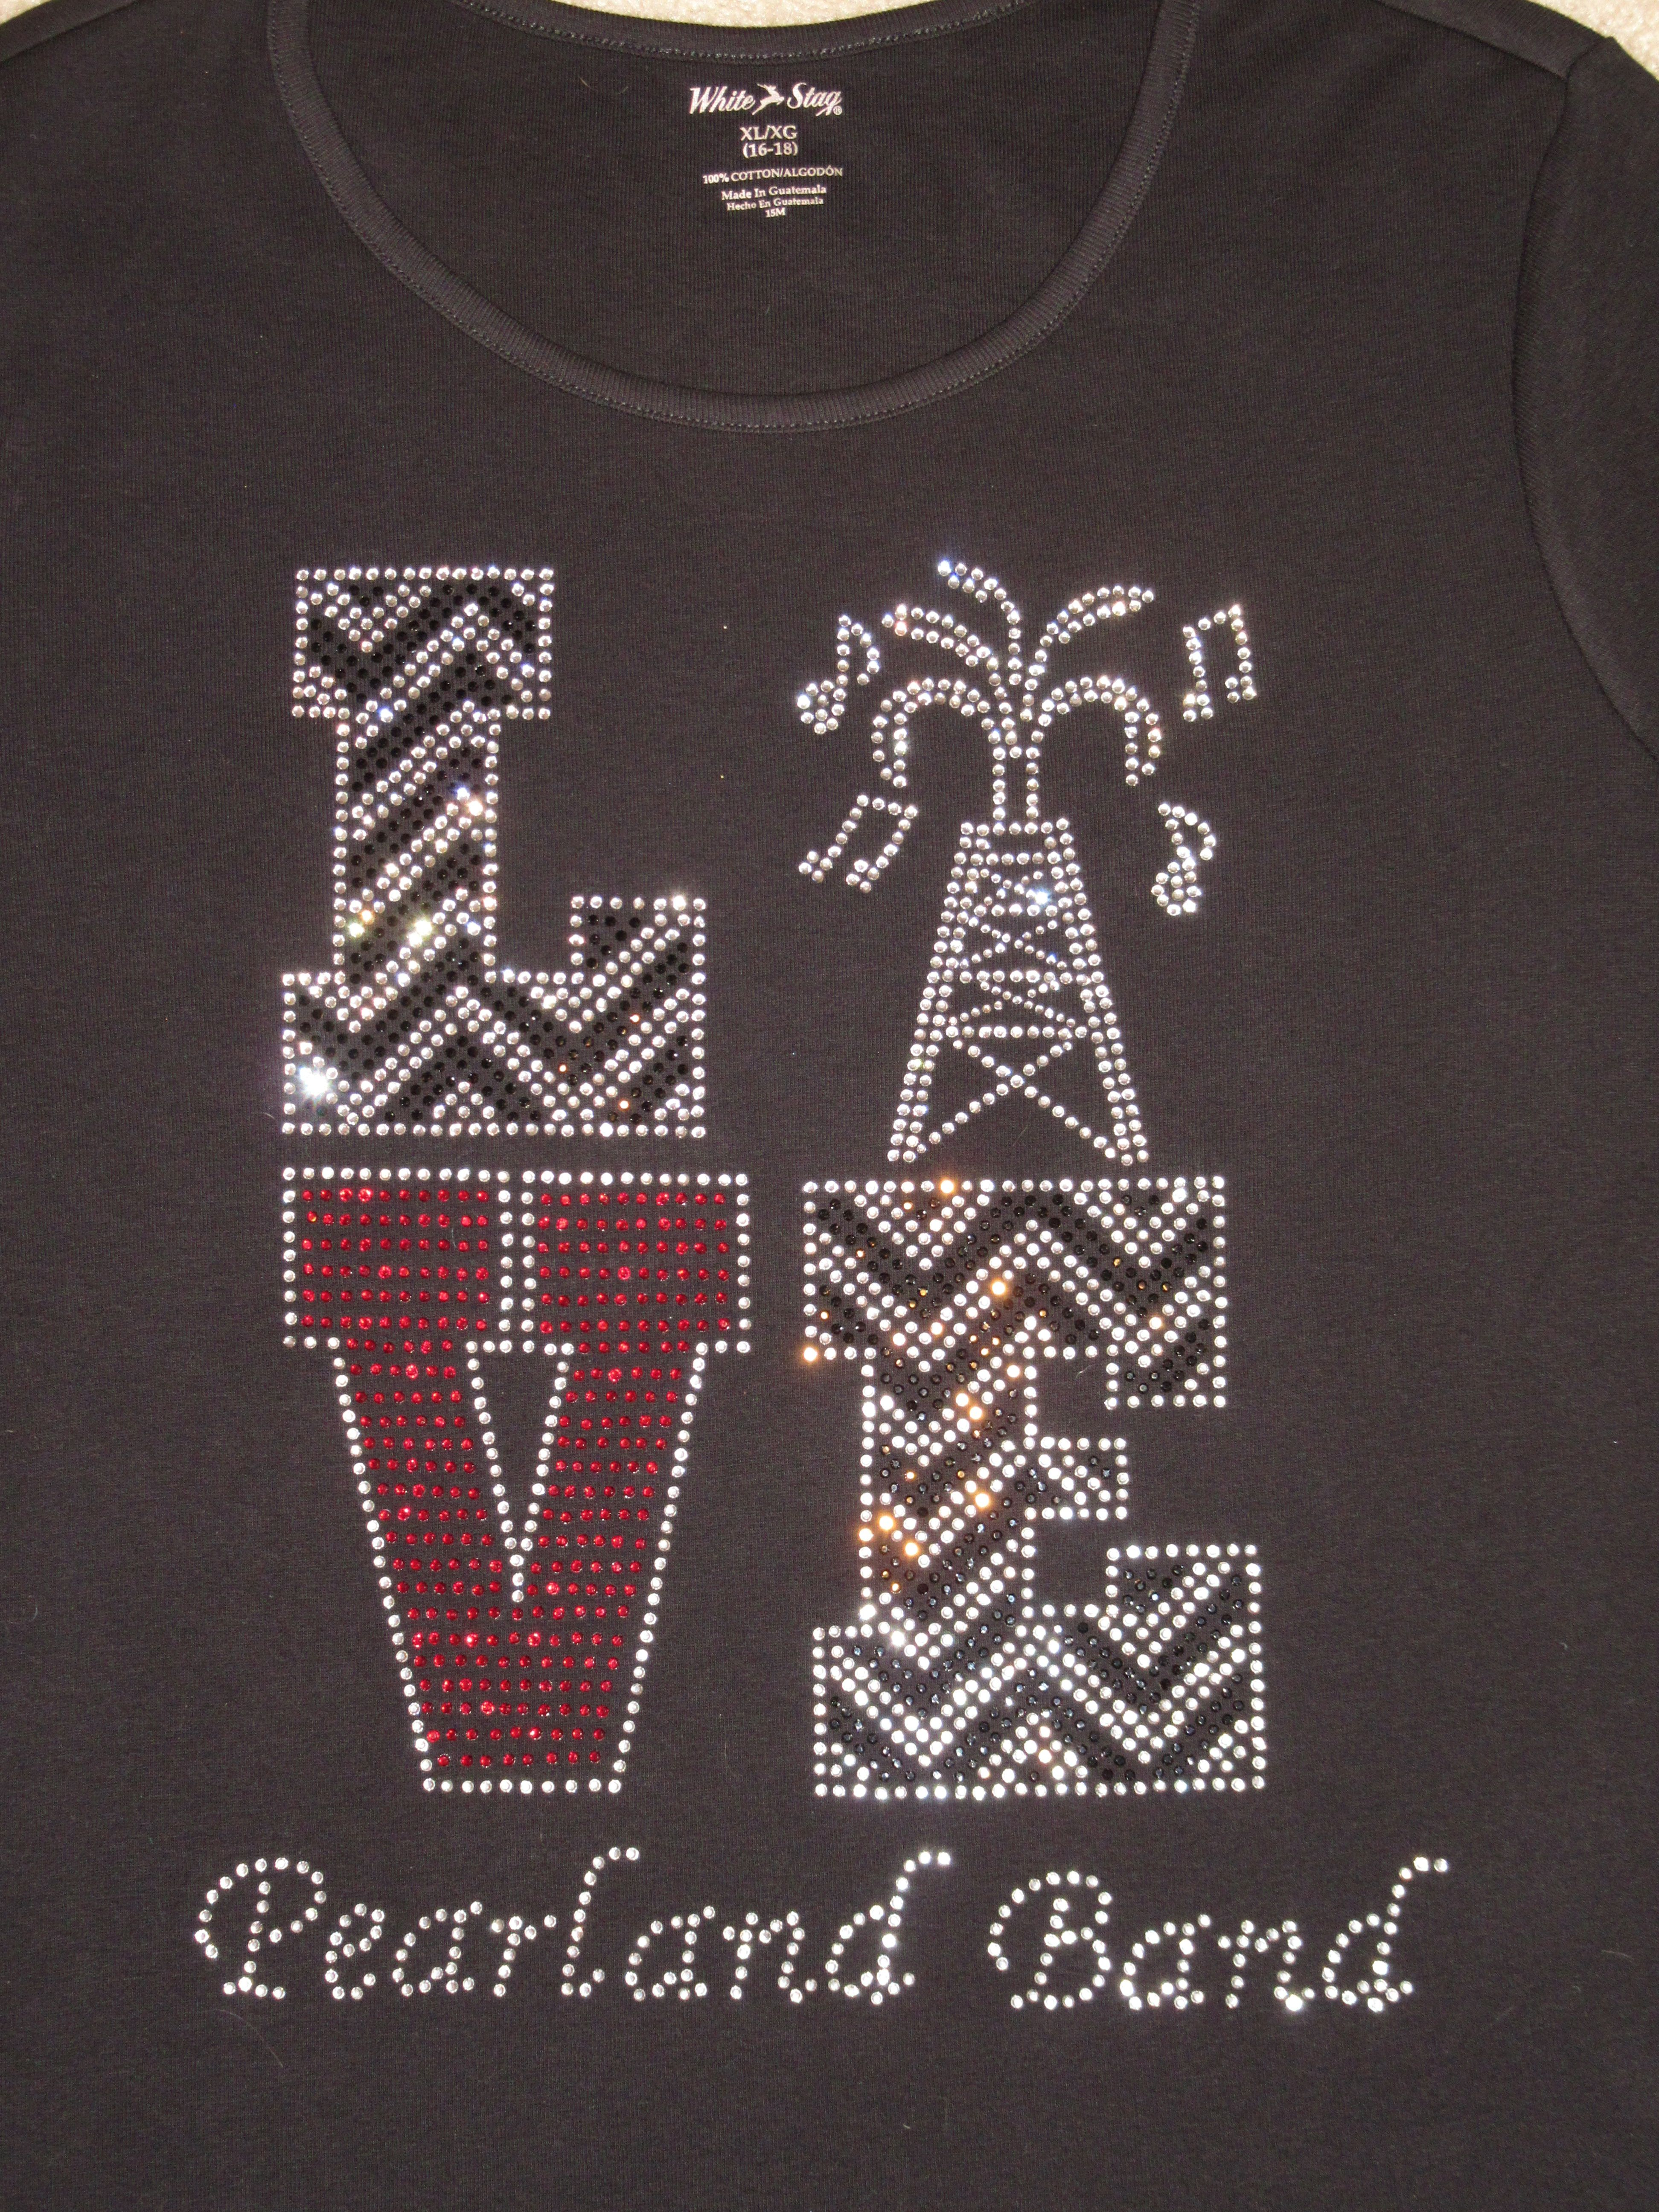 Custom Love Design For Pearland High School Oilers Marching Band